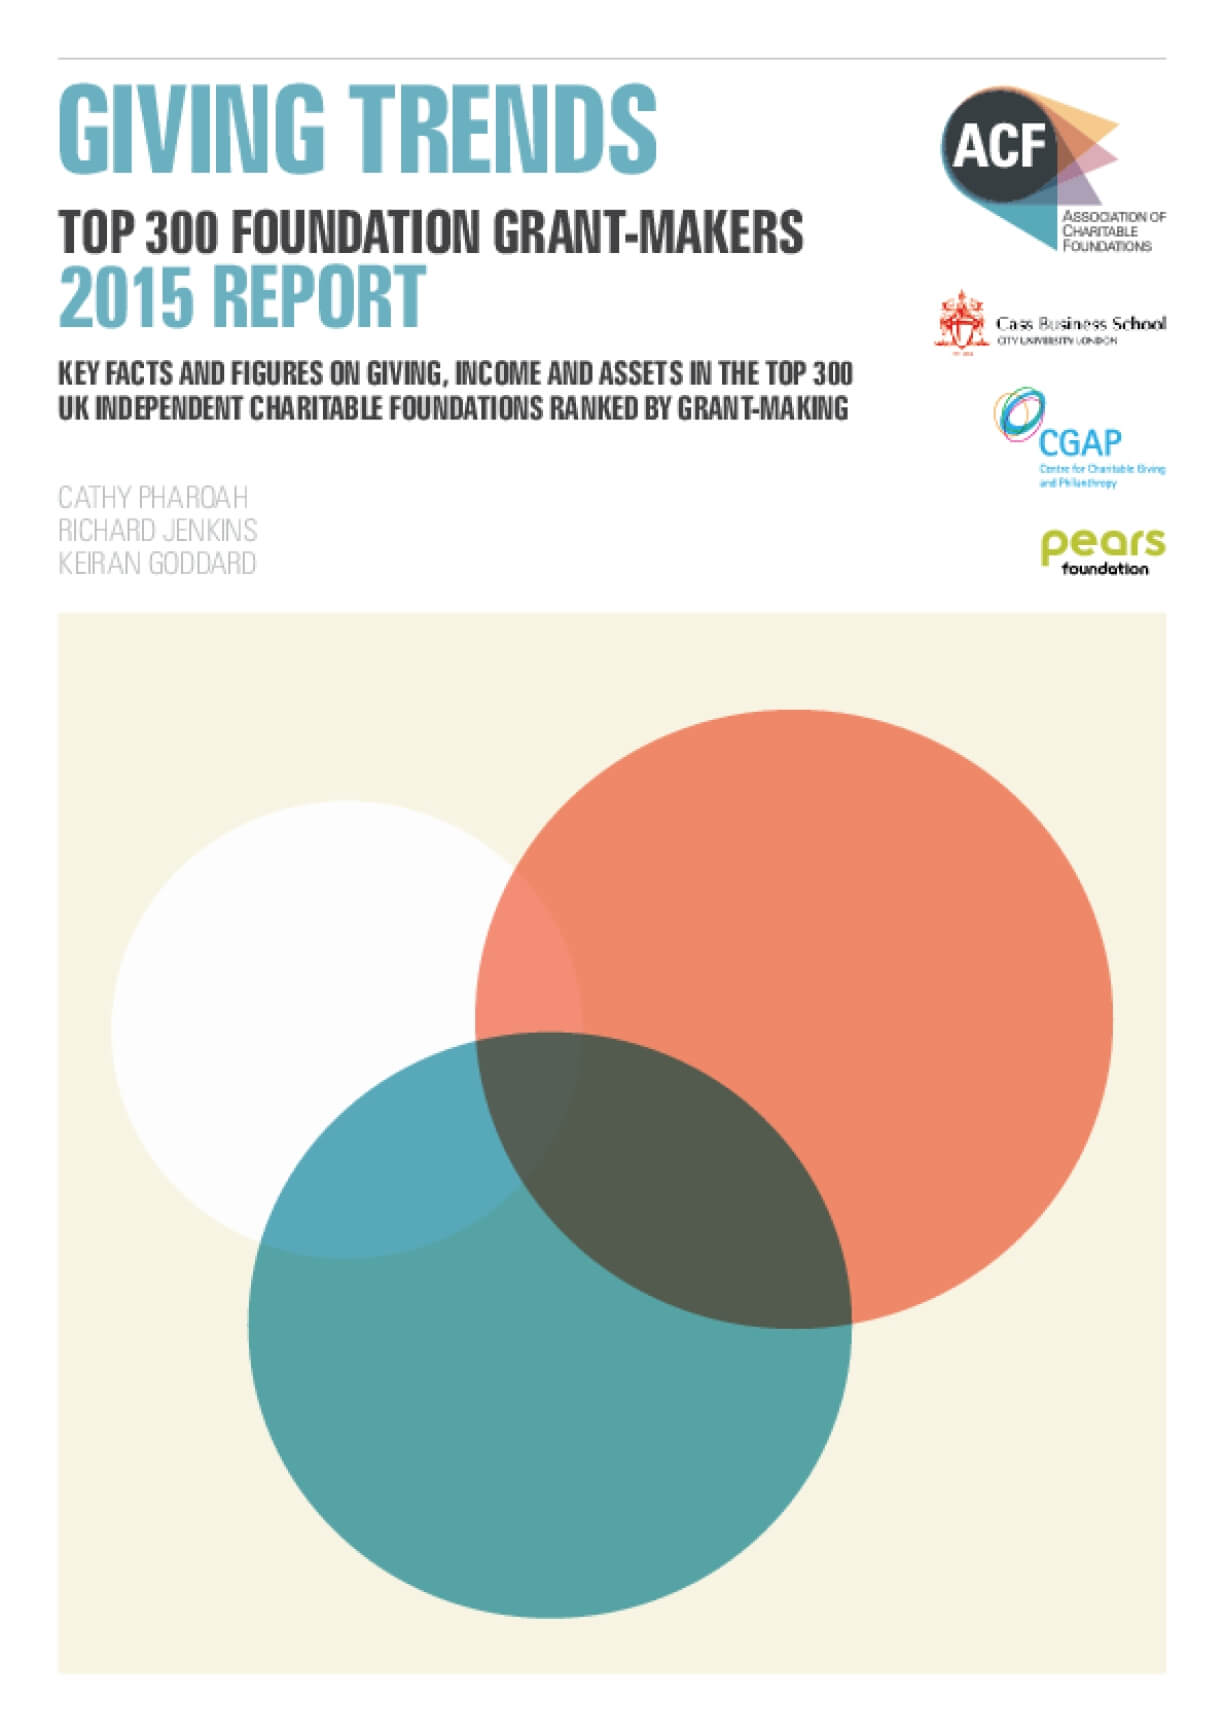 Giving Trends Top 300 Foundation Grant-Makers 2015 Report : Key Facts and Figures on Giving, Income and Assets in The Top 300 UK Independent Charitable Foundations Ranked by Grant-Making